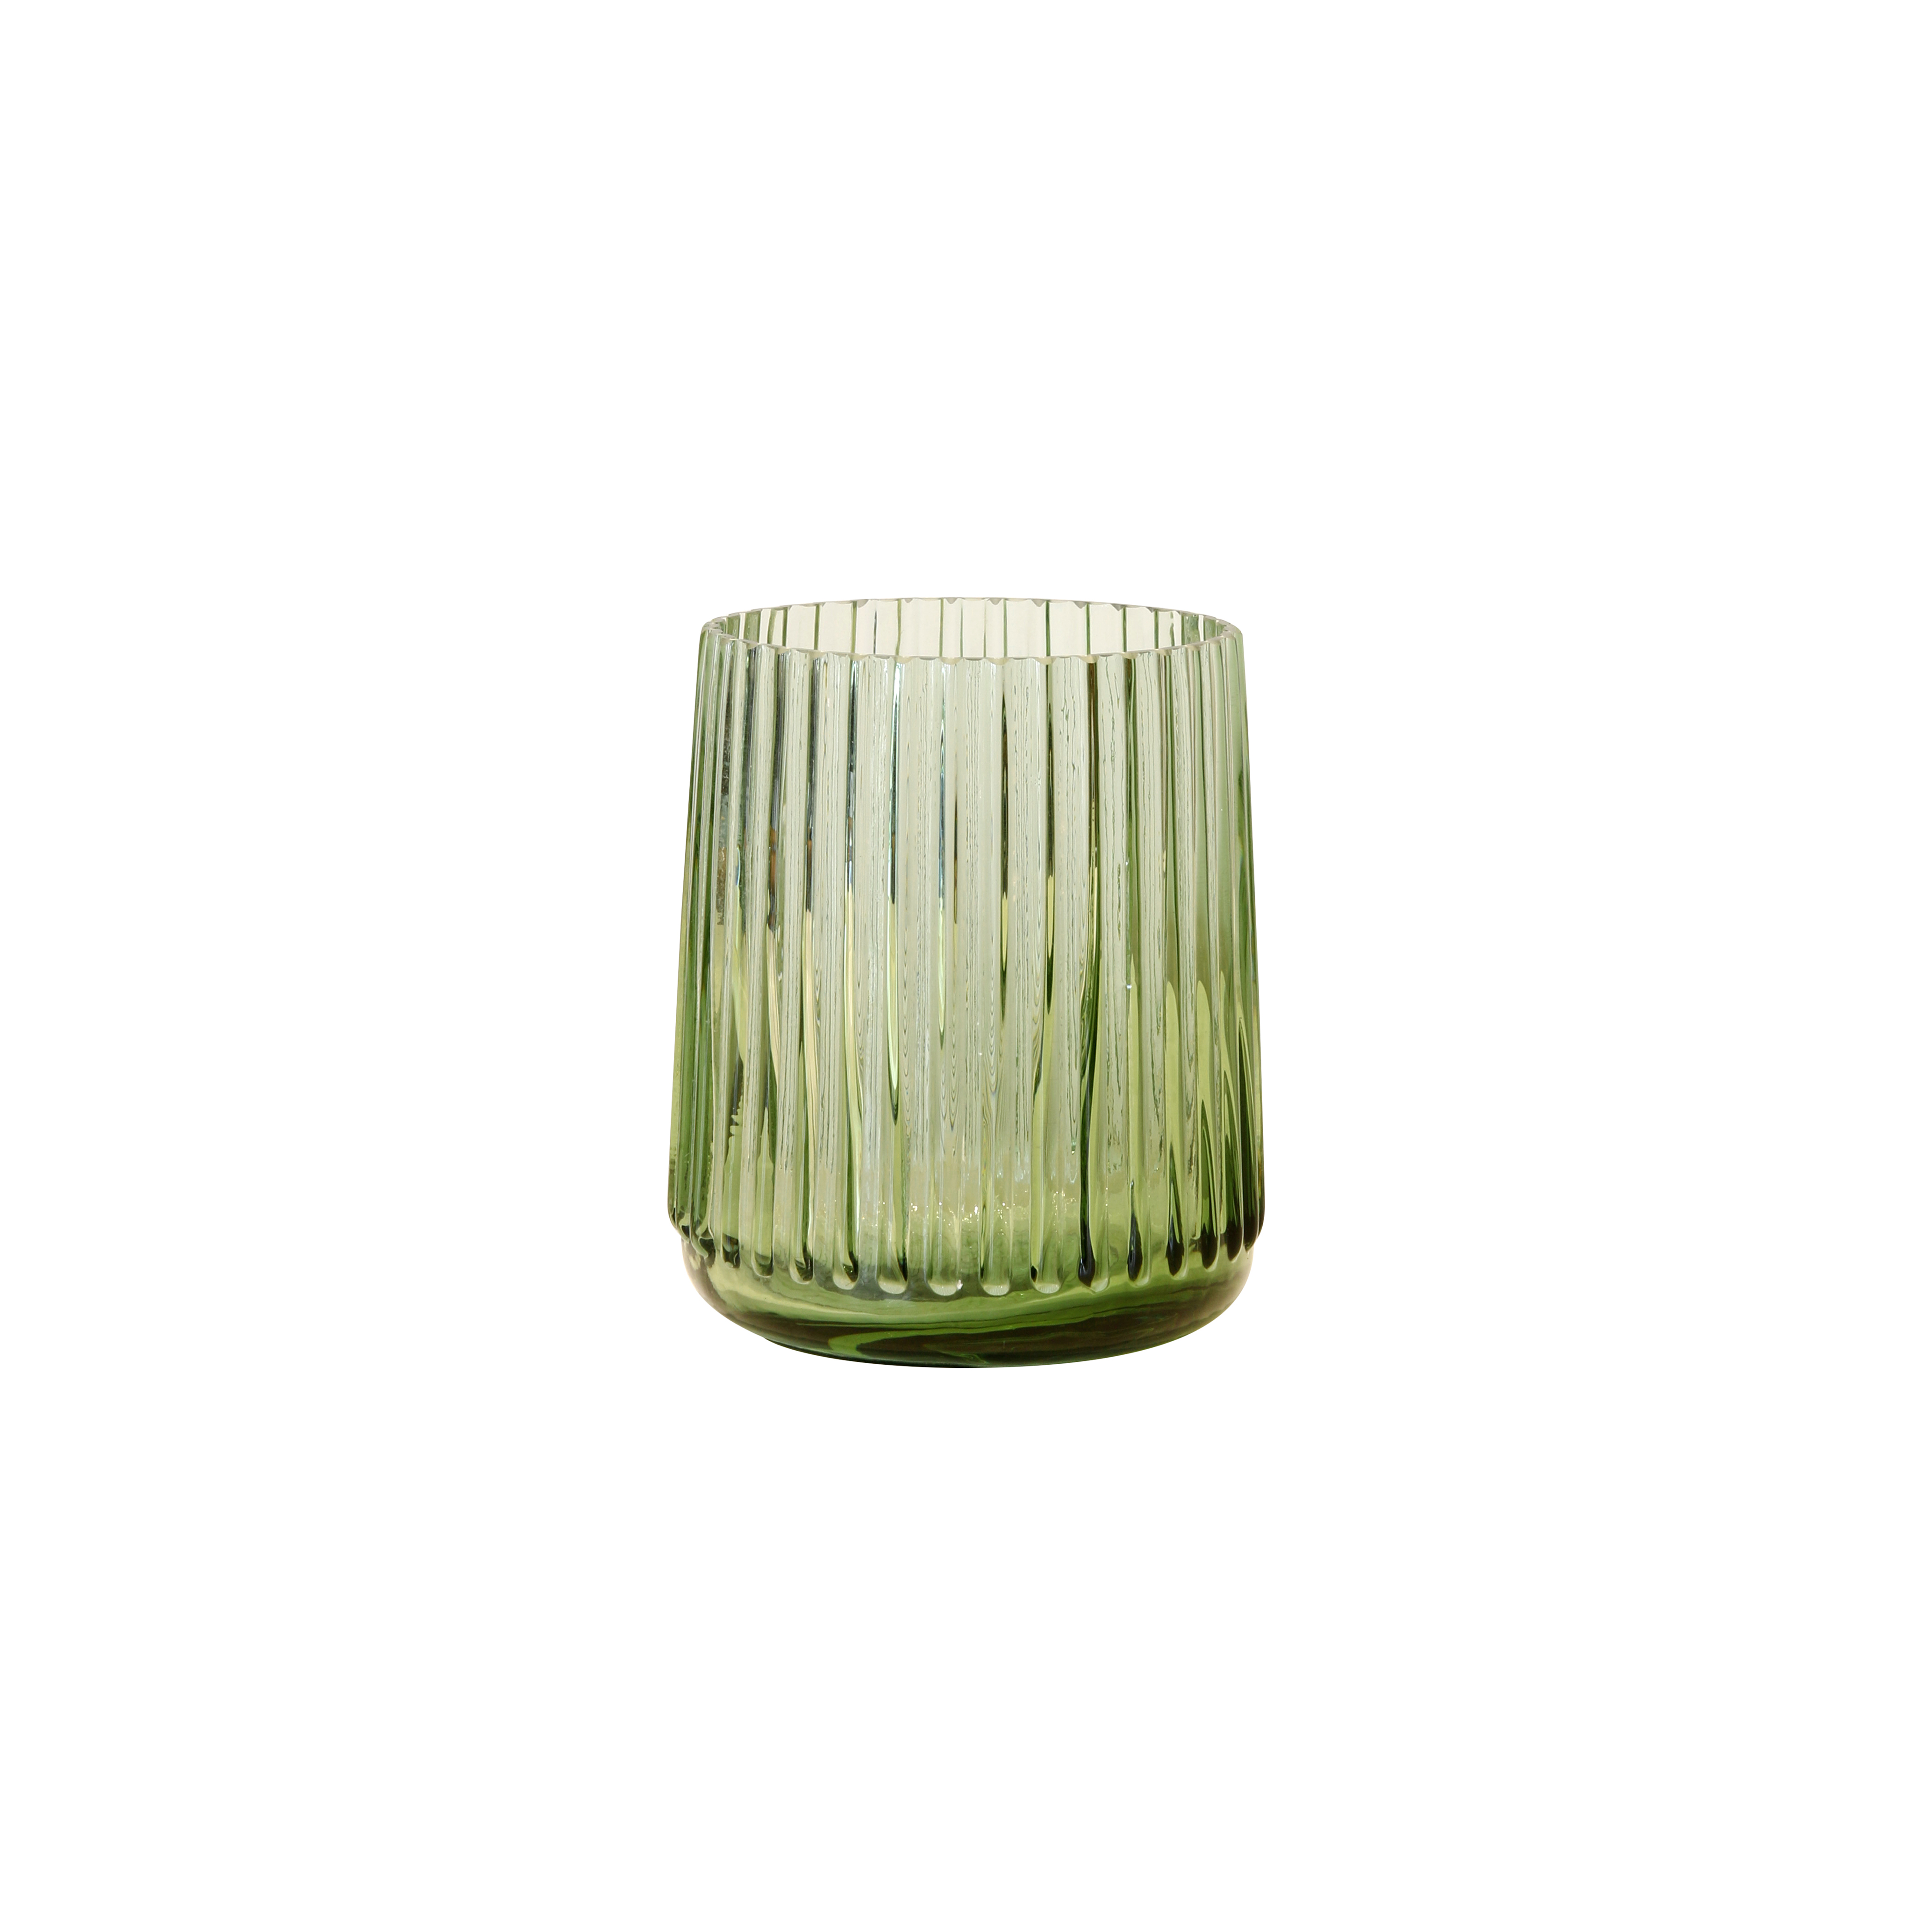 Green glass vase - small